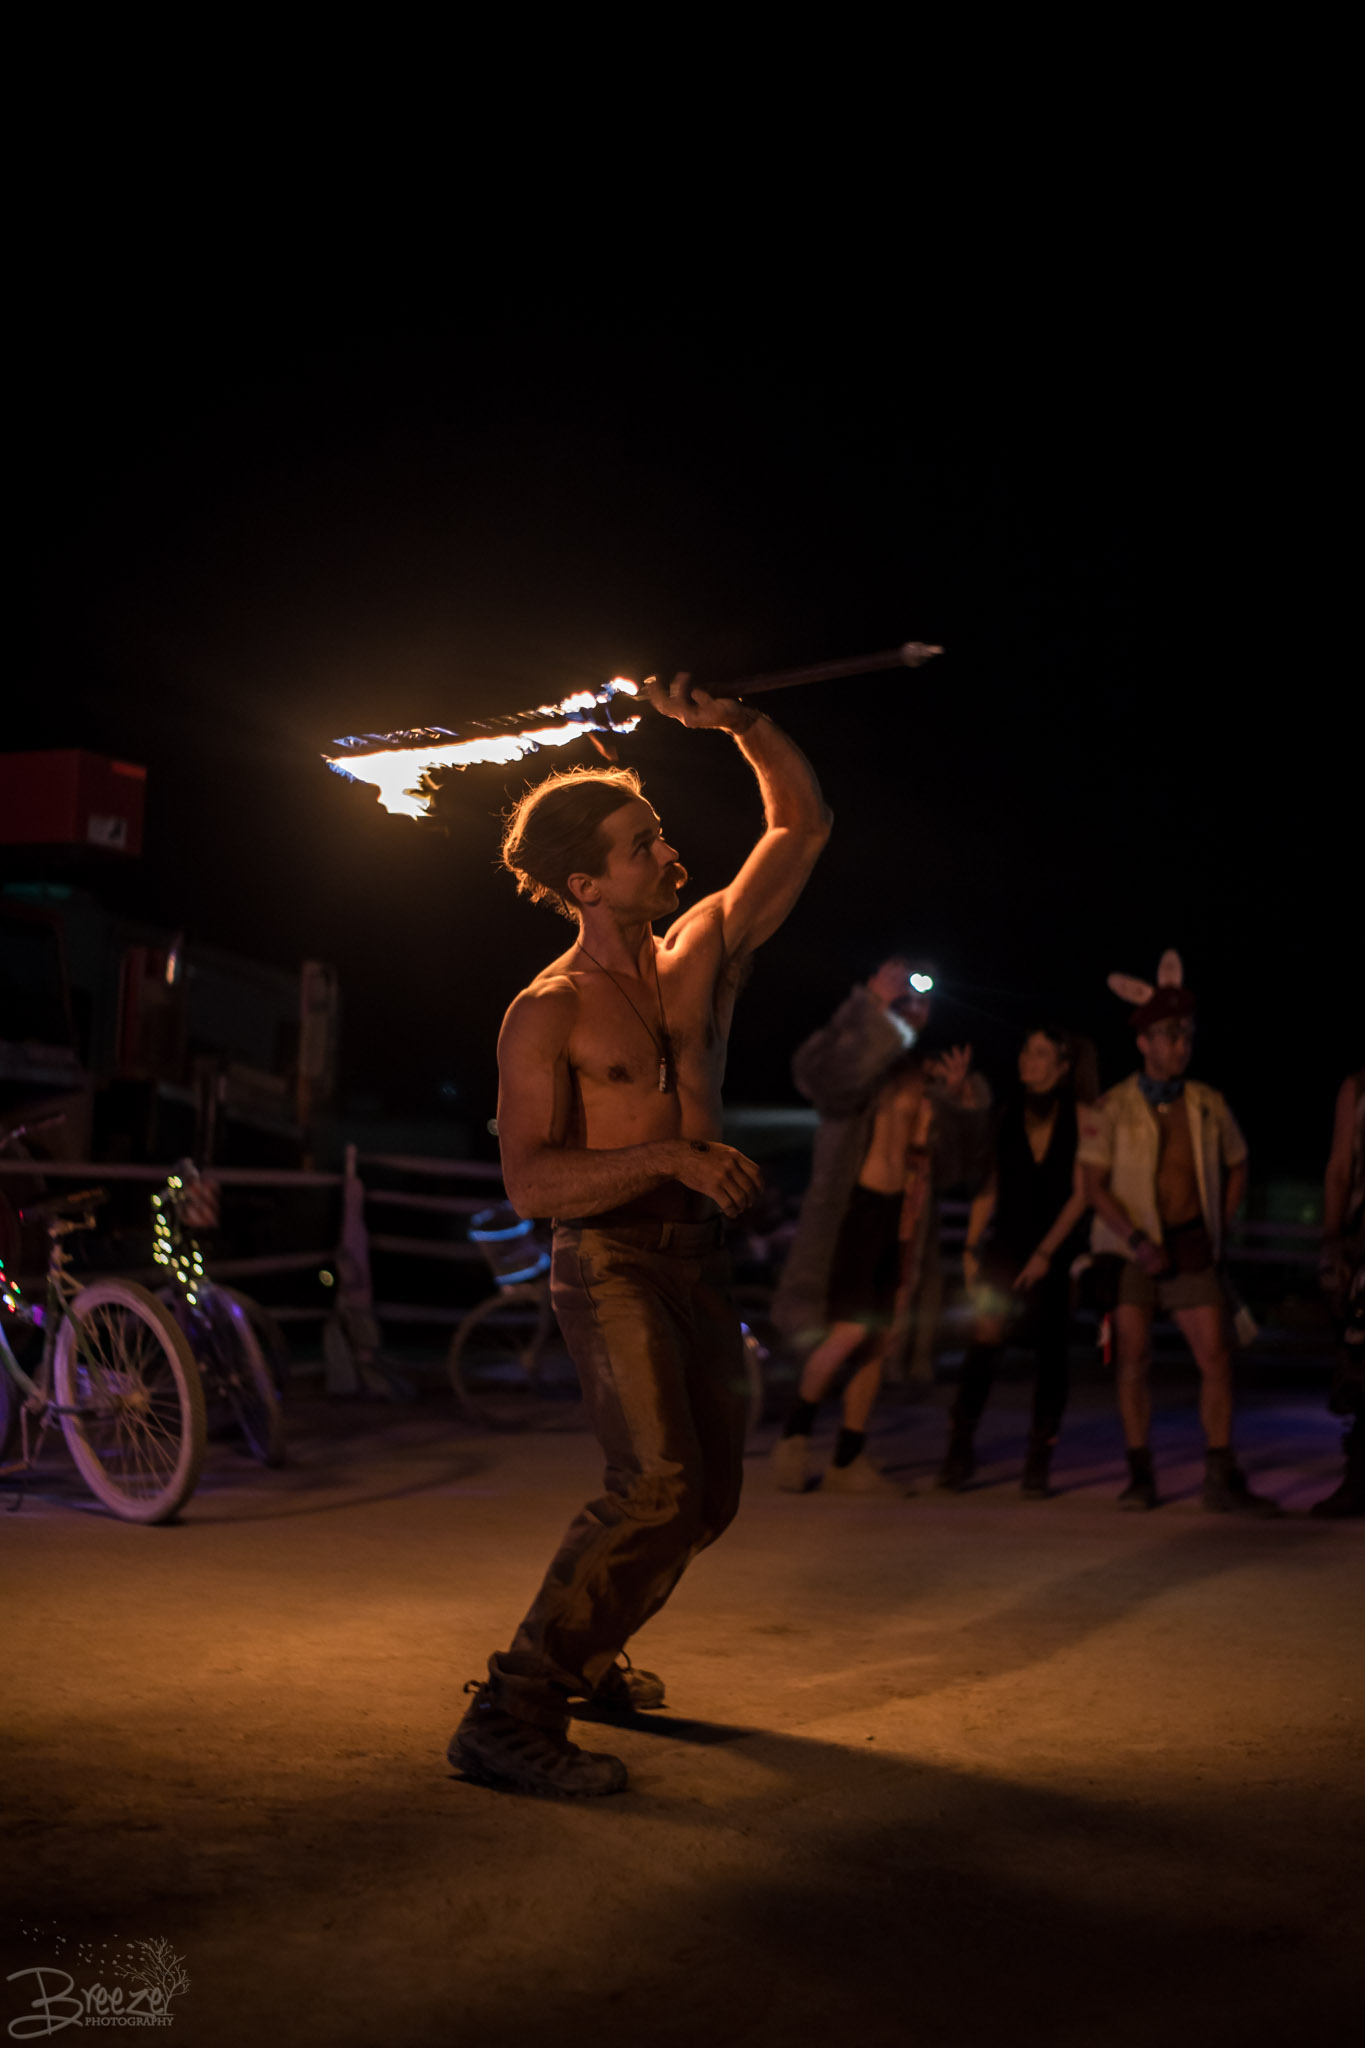 Brie'Ana Breeze Photography & Media - Burning Man 2018-2998.jpg